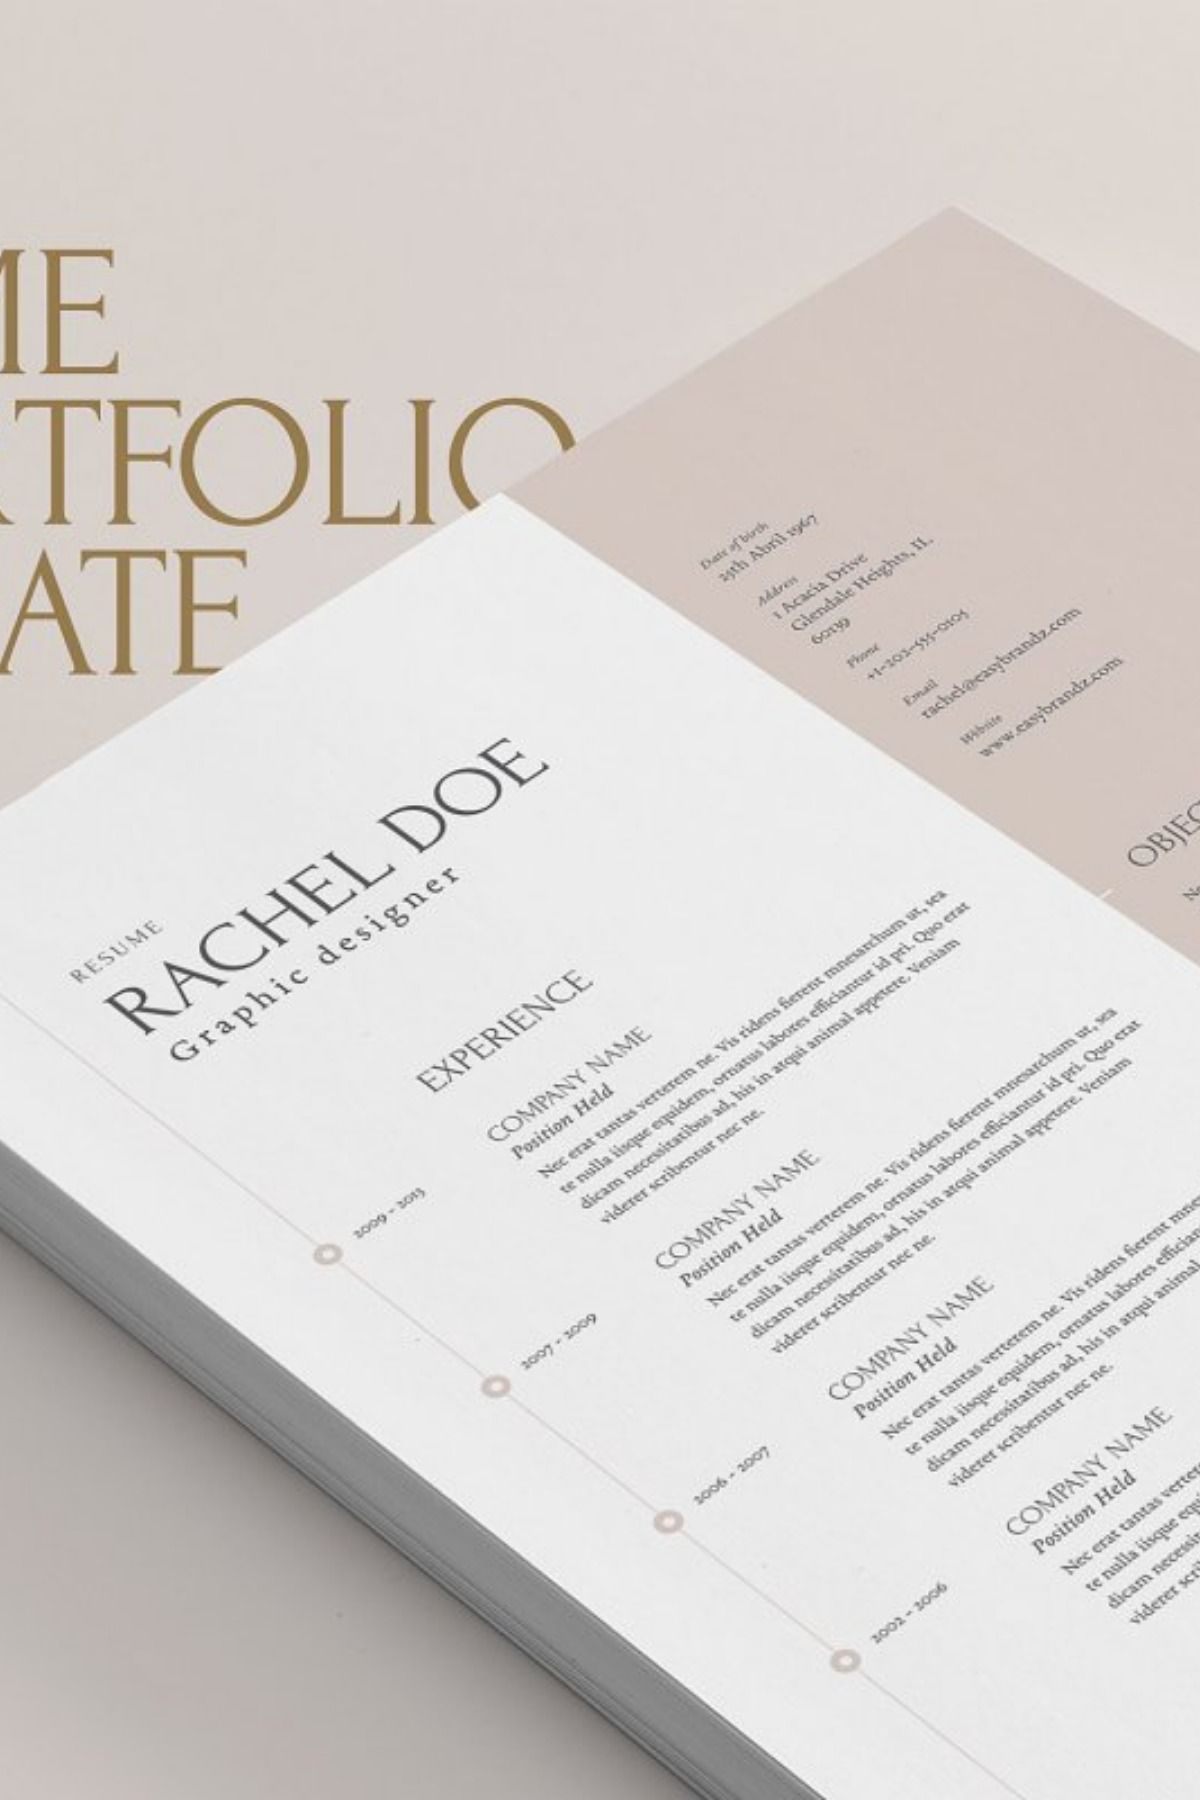 This resume & portfolio was designed to make you stand out